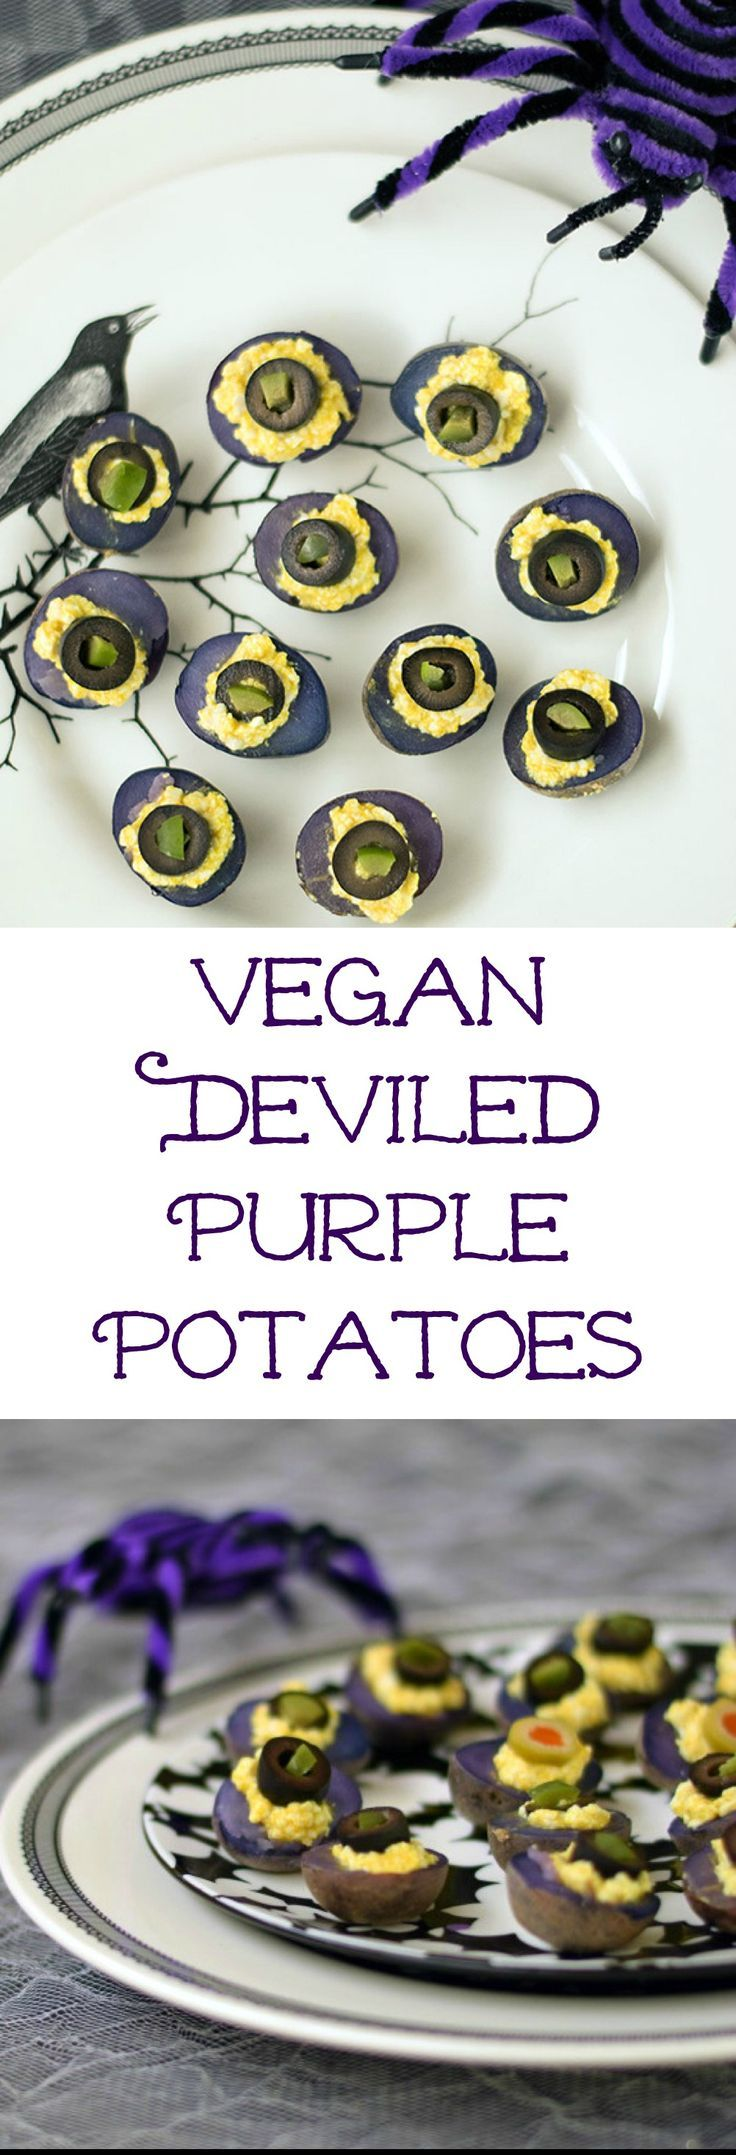 Halloween Vegan Deviled Purple Potatoes is just one of the festive recipes in…